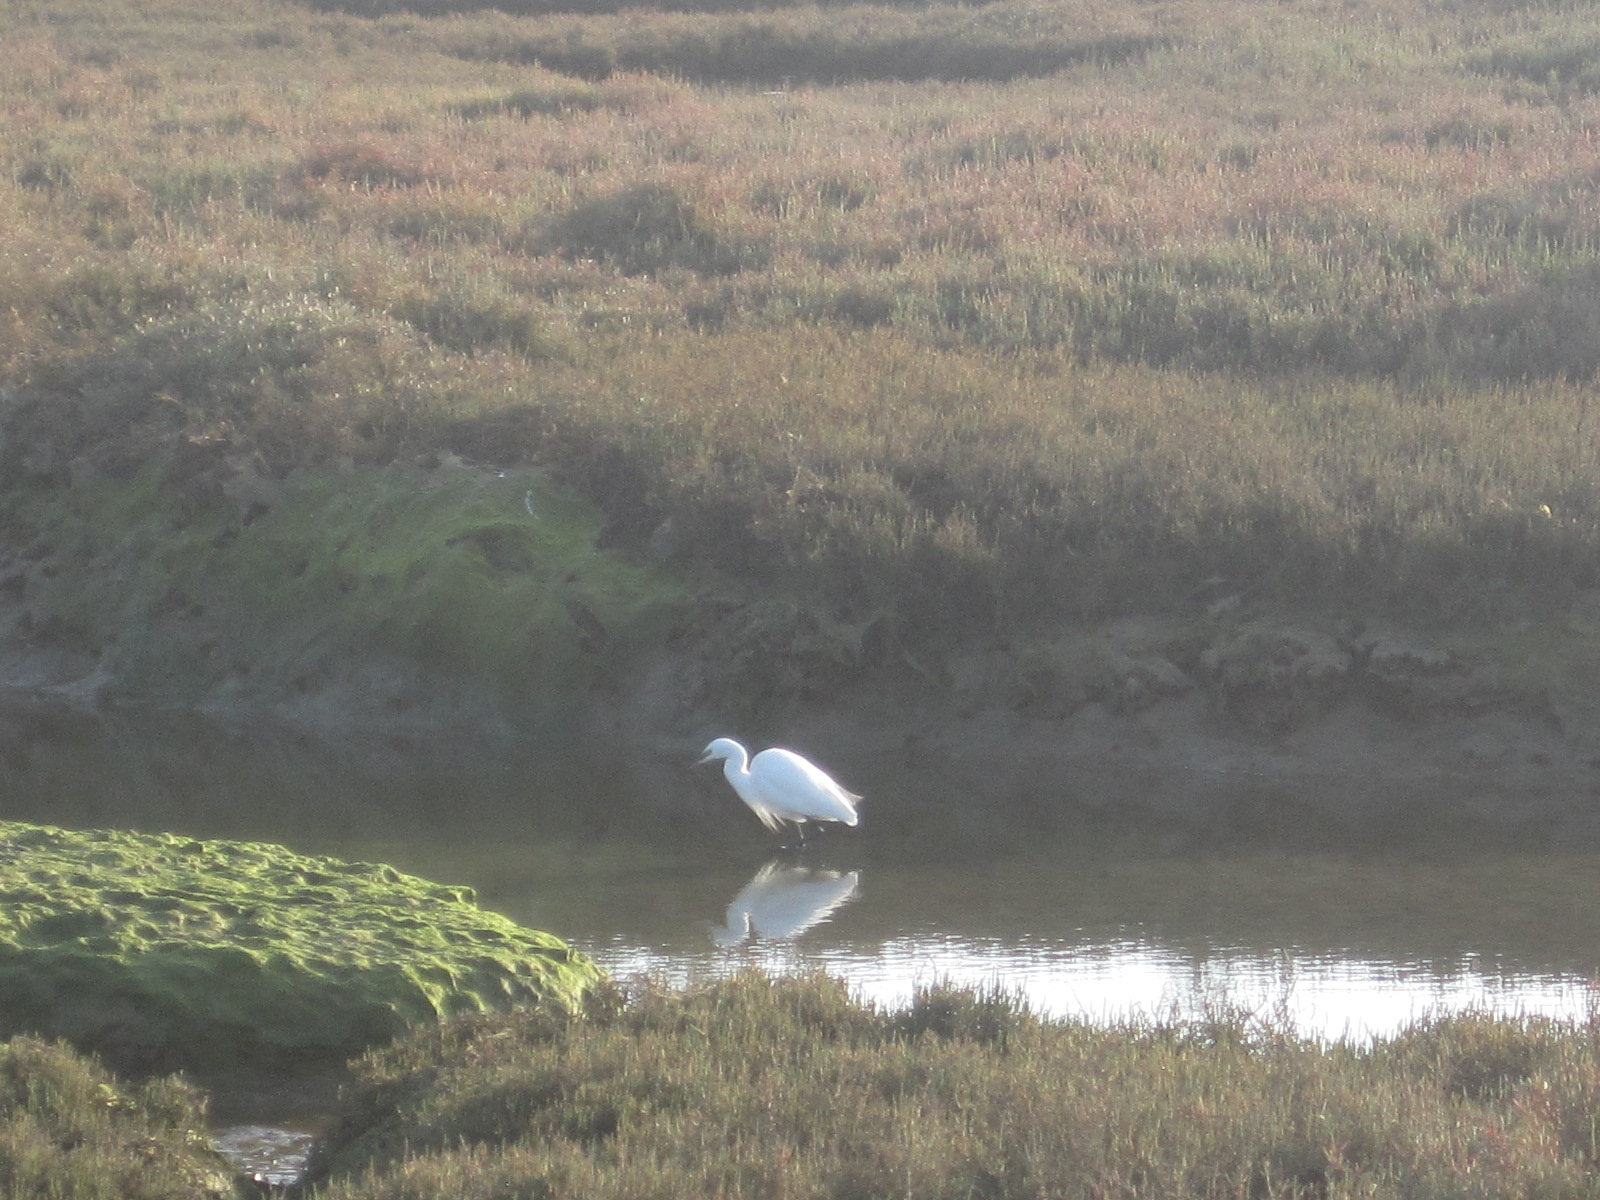 And the bird life in the marshes